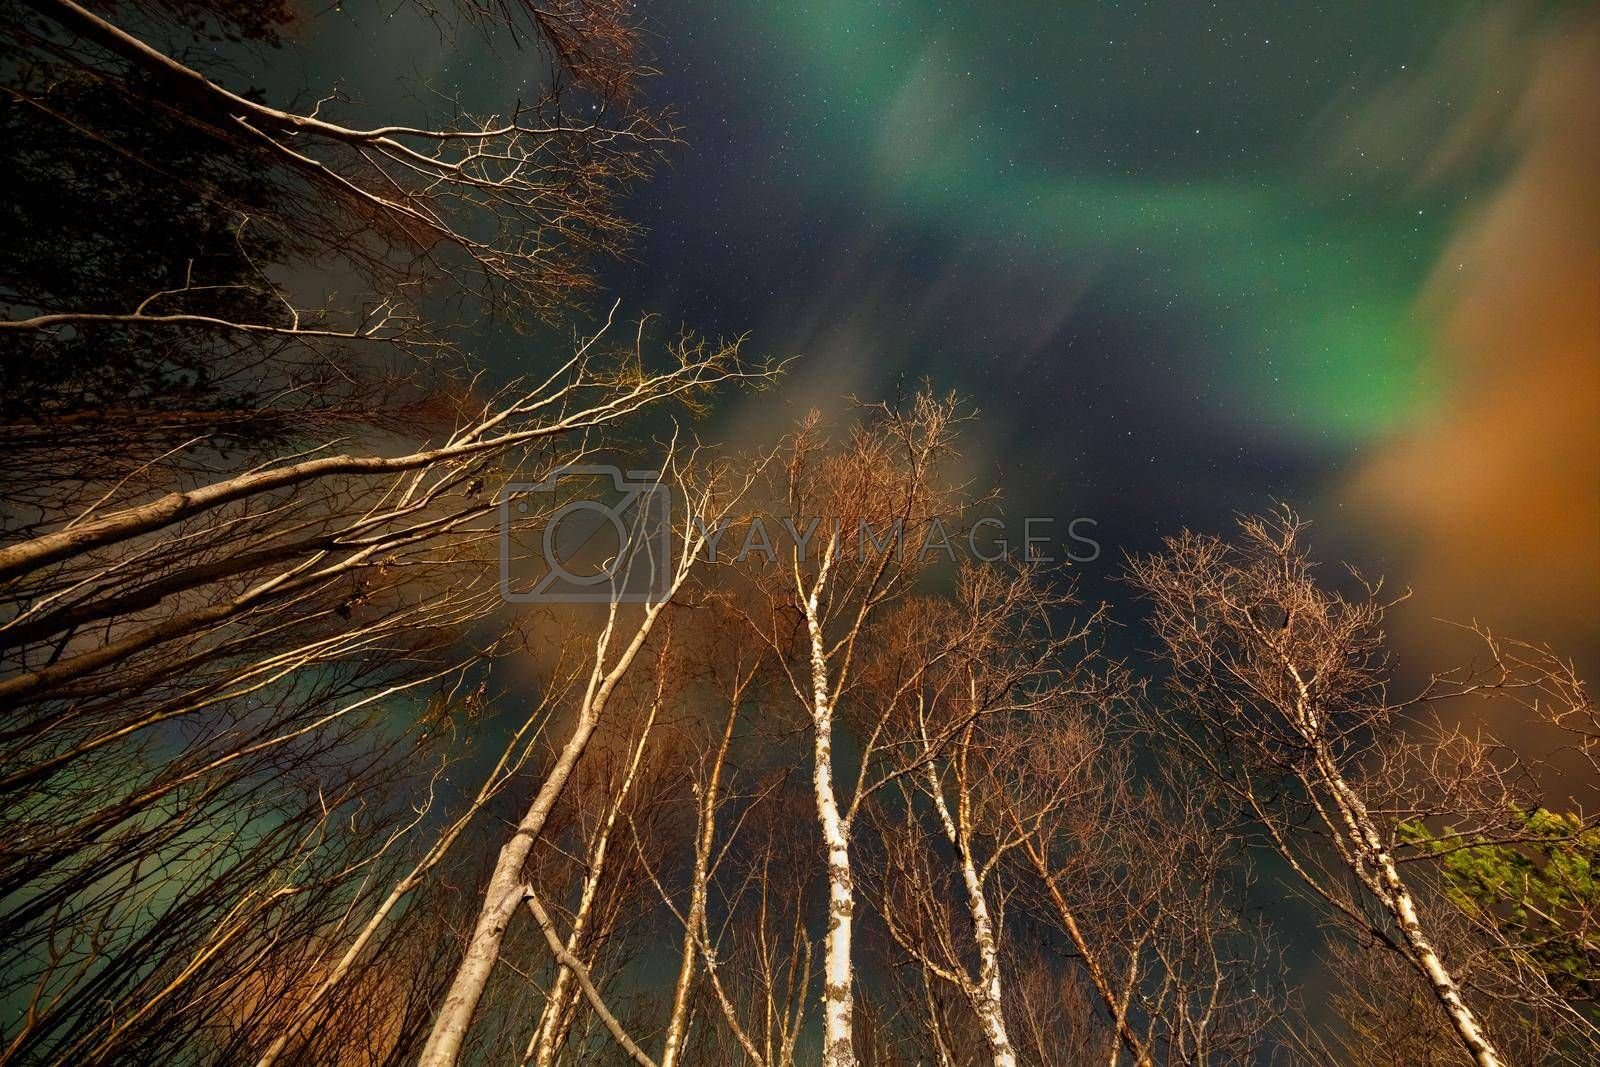 Beautiful Skyscape of a Northern Lights over High Trees. Magical Green Aurora Lights in the Night Sky. Amazing Natural Phenomena. Norway.